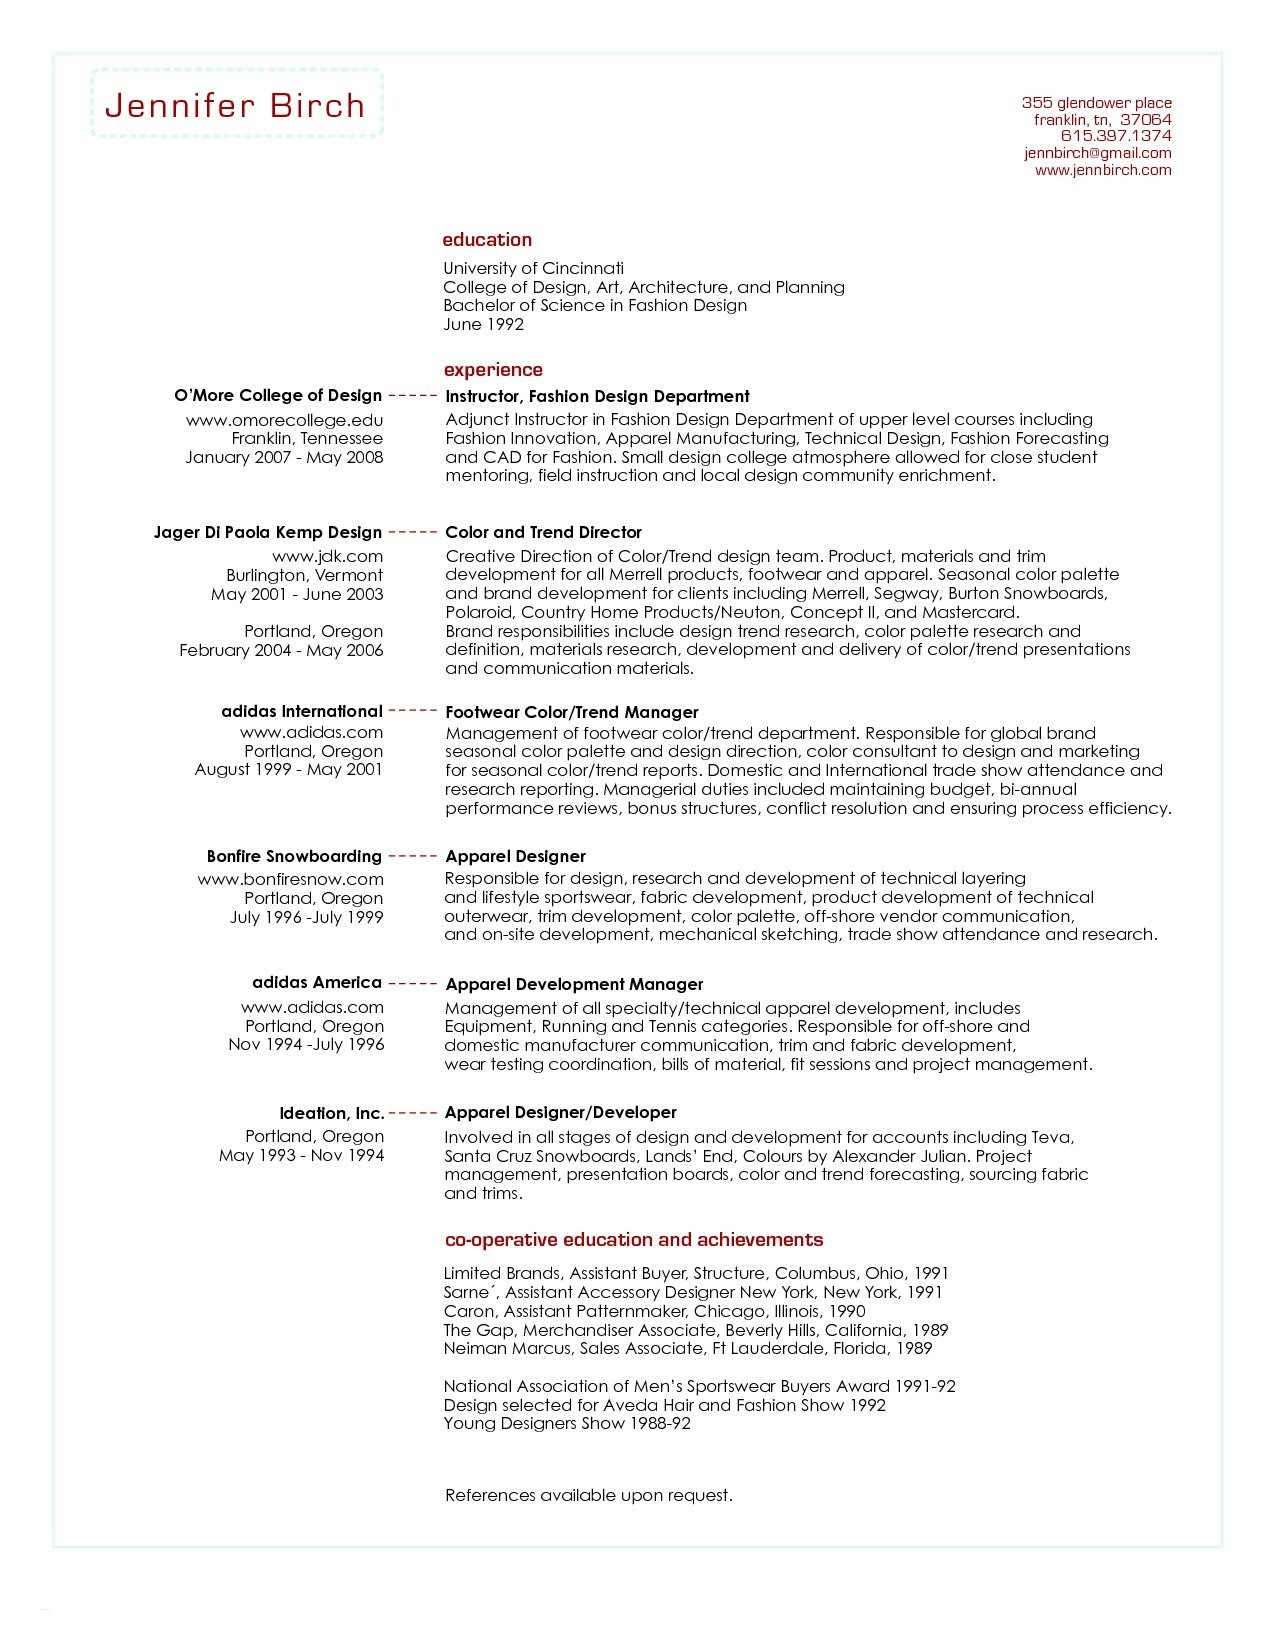 Product Management Resume - Sample Sales Management Resume New Retail Store Manager Resume Best